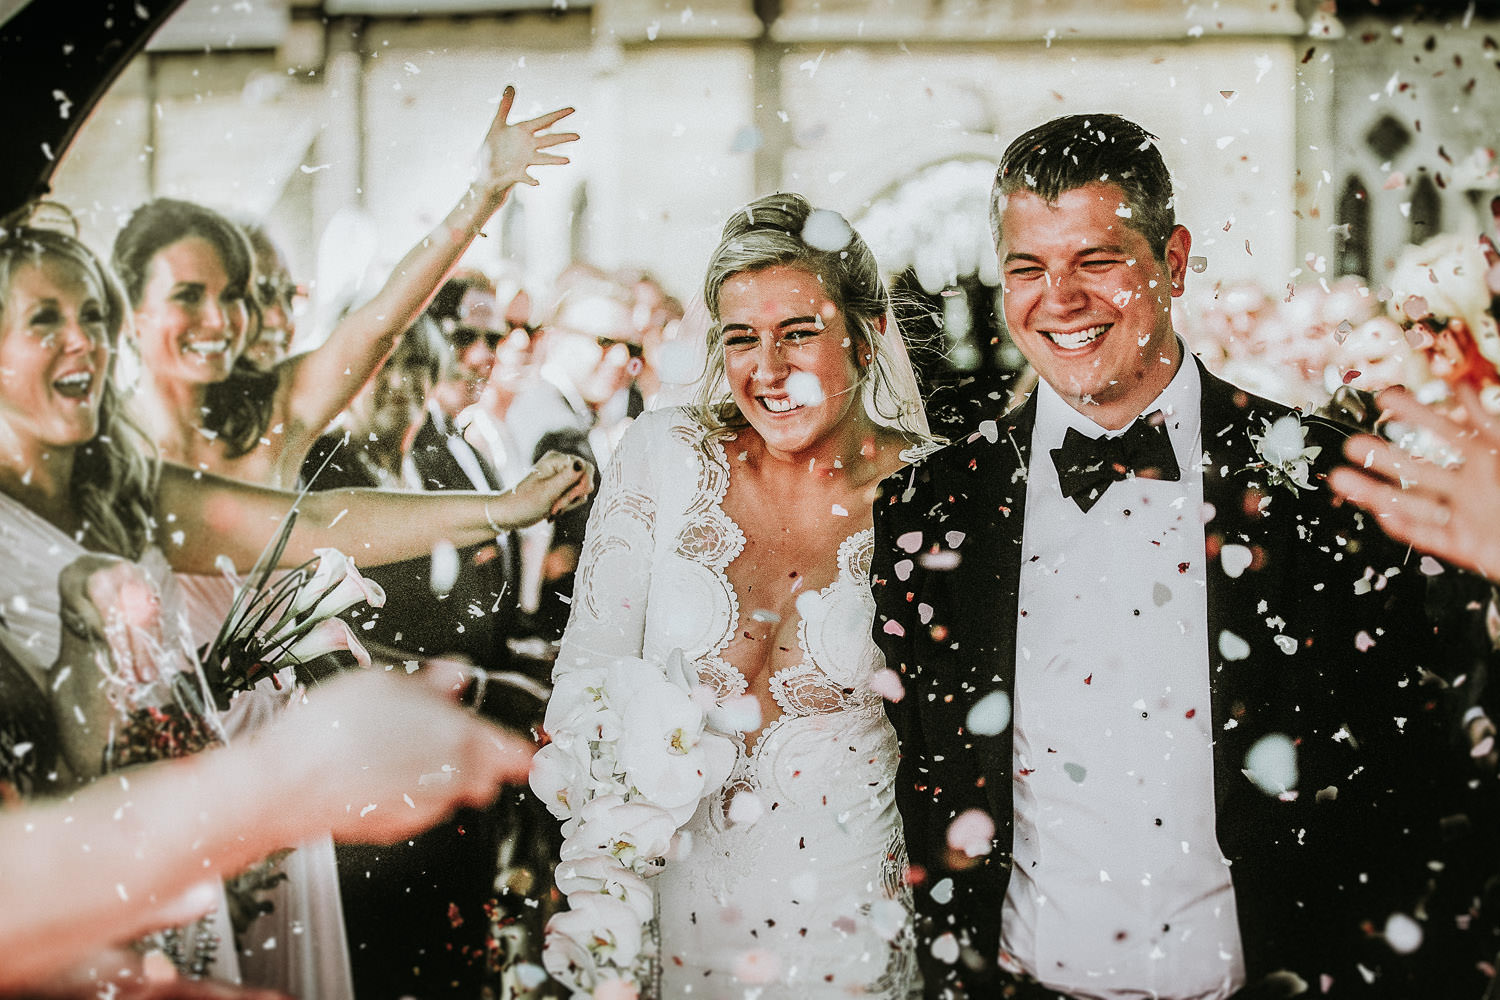 cost pf wedding photography bride and groom showered in confetti on wedding day